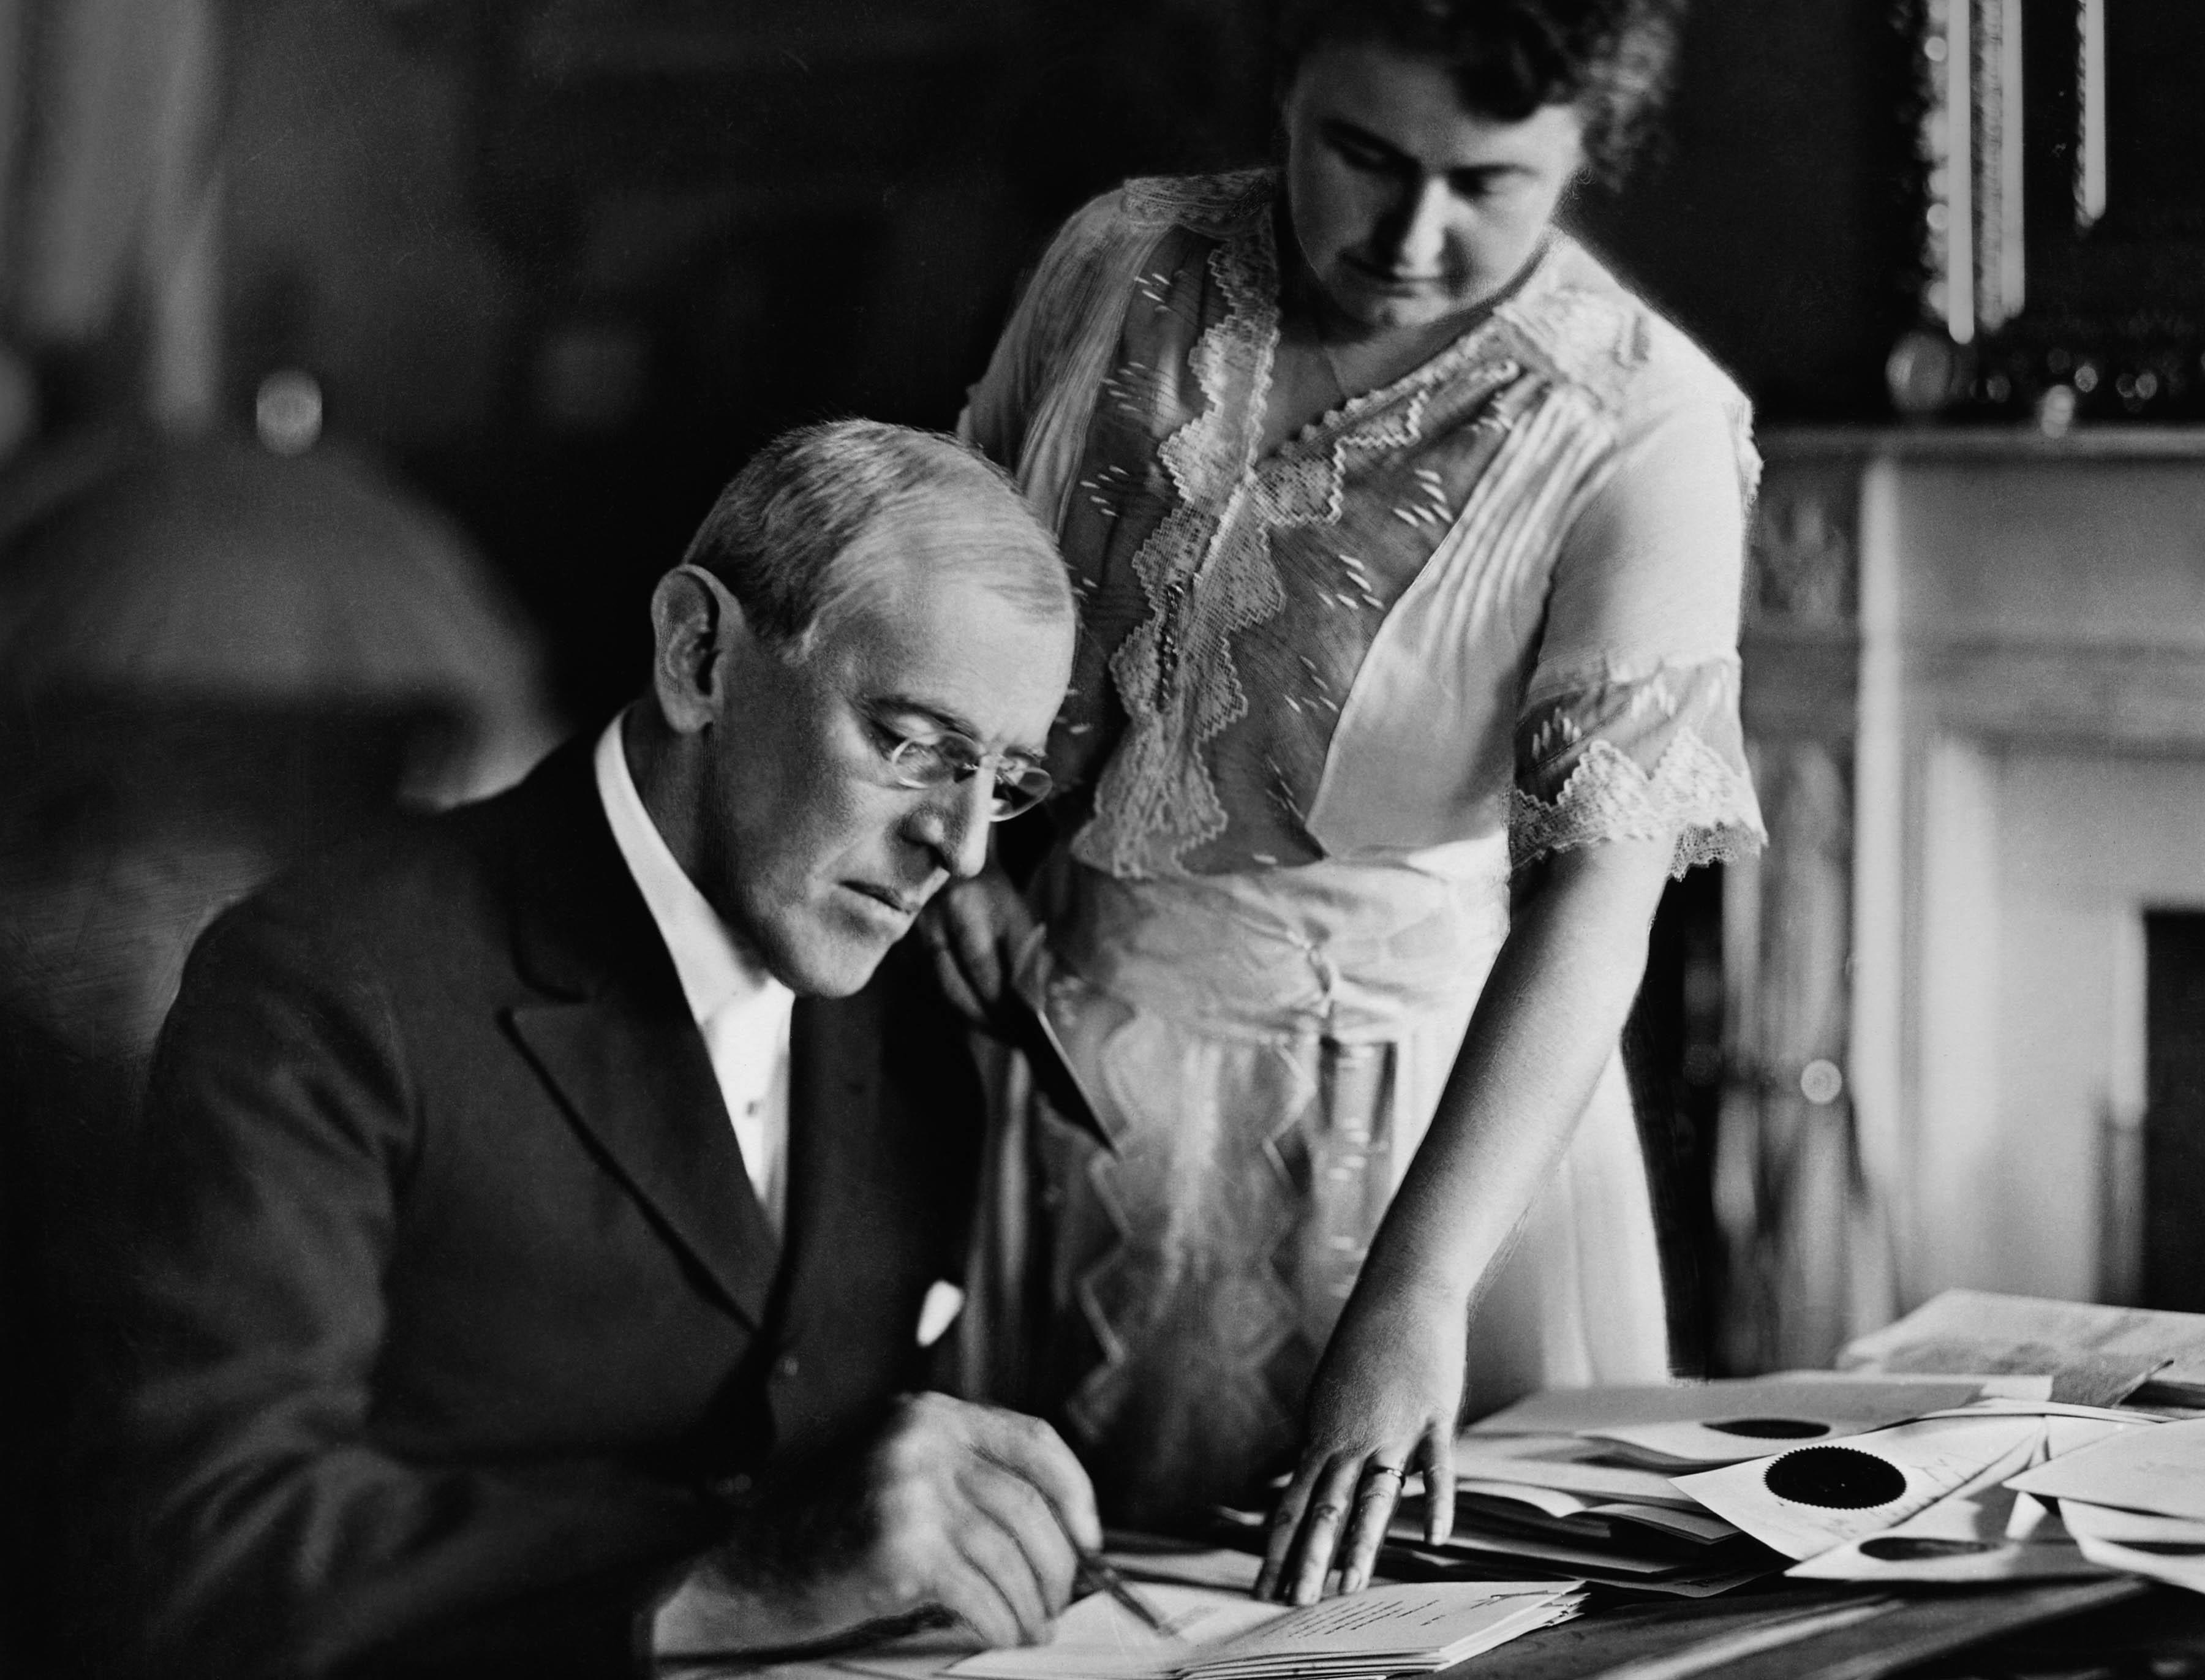 """President Woodrow Wilson with his second wife Edith Bolling Galt Wilson, who was often referred to as """"secret president"""" because of the important role she played in Wilson's presidency during his long and debilitating illness following a stroke. (Credit: Stock Montage/Getty Images)"""